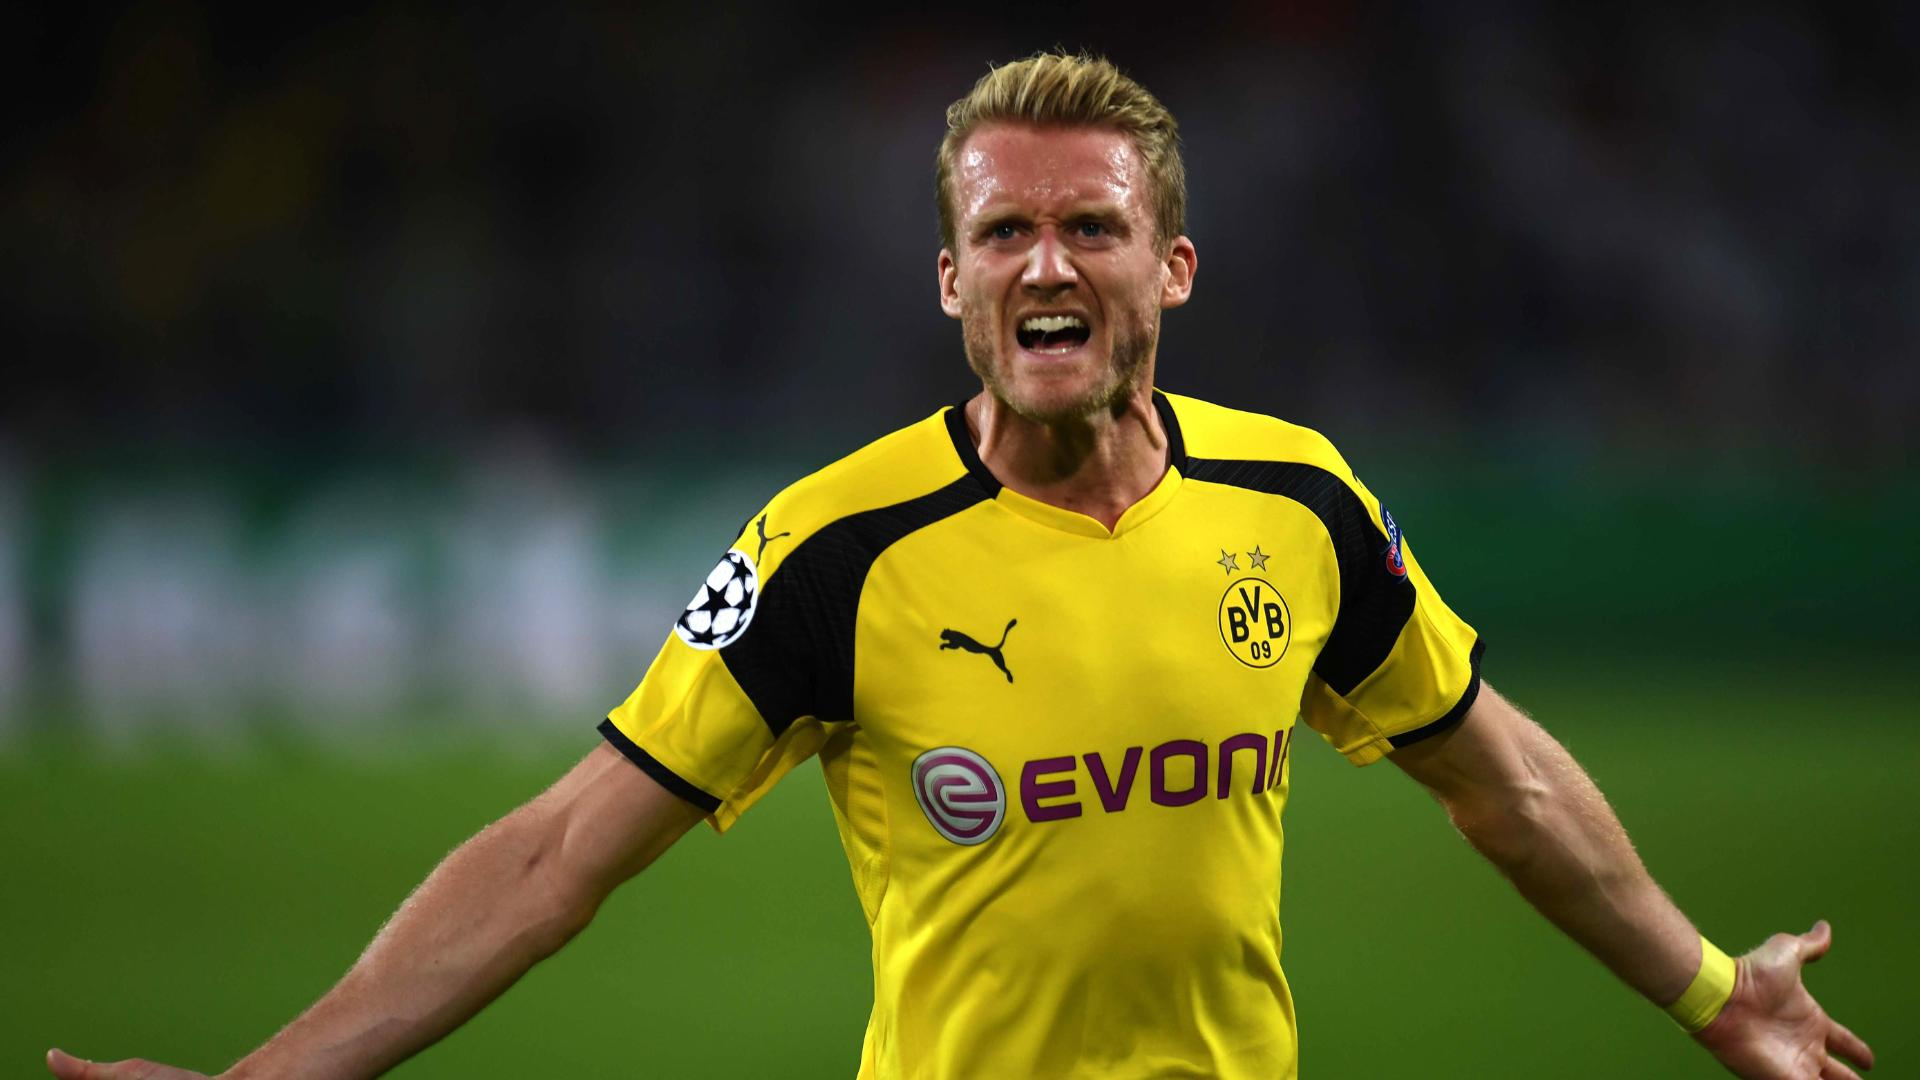 Borussia Dortmund battle back for thrilling 2-2 draw vs. Real Madrid